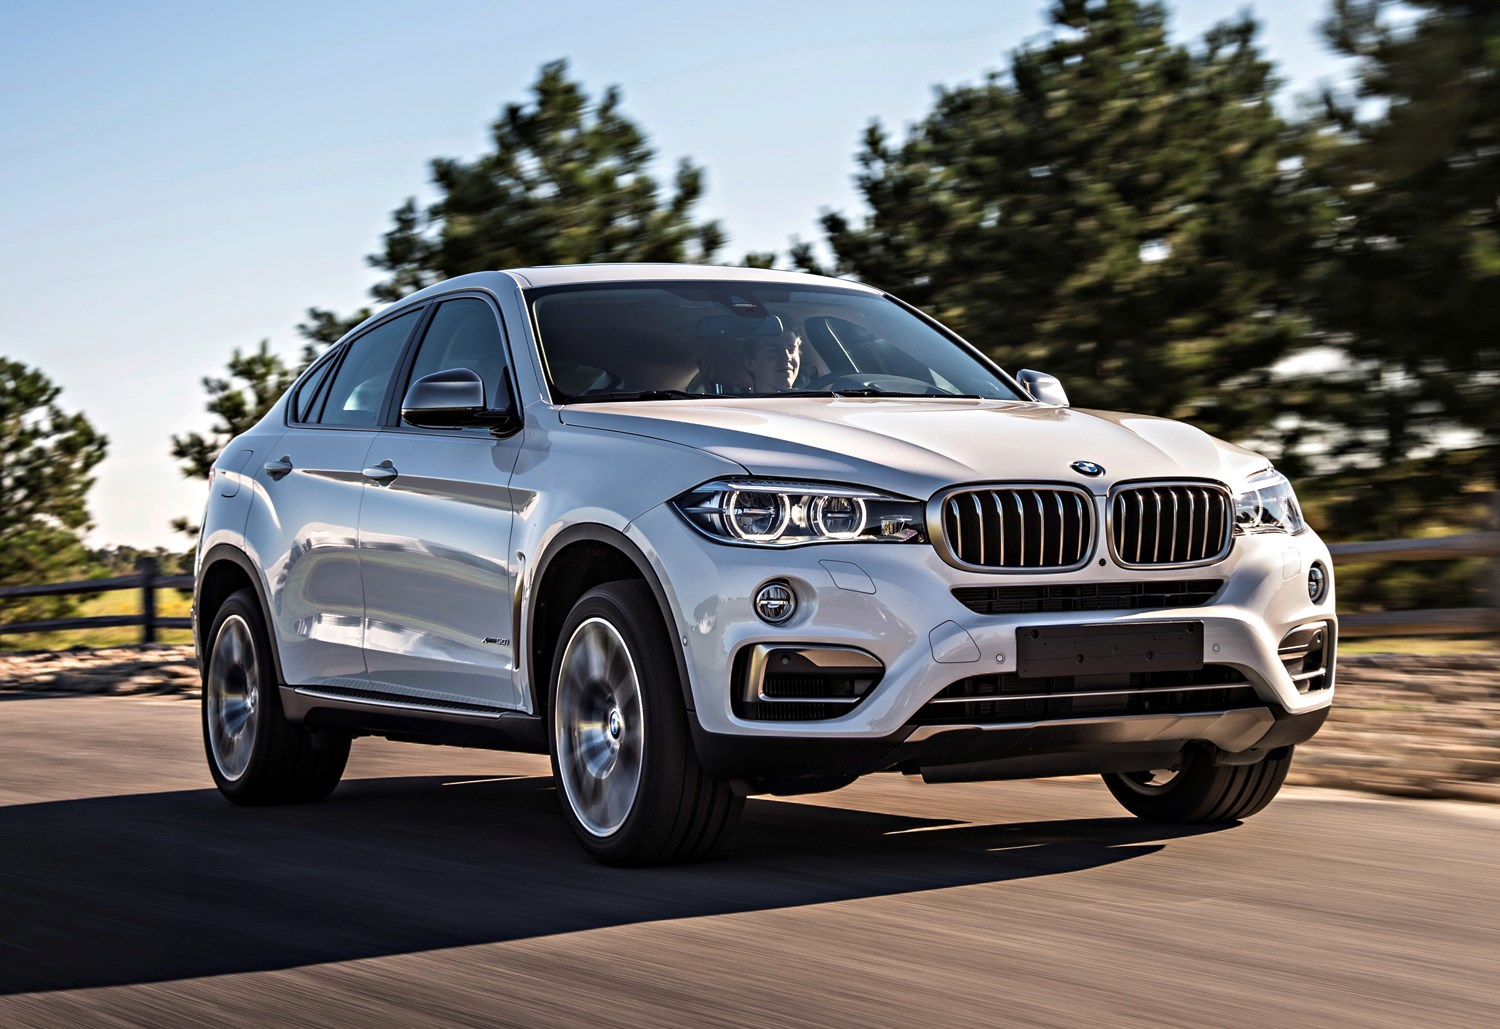 bmw x6 4x4 2014 buying and selling parkers. Black Bedroom Furniture Sets. Home Design Ideas